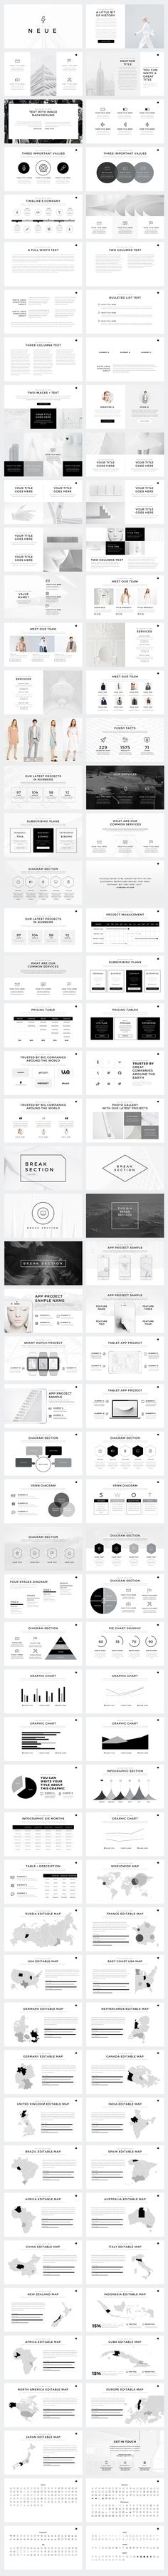 Neue Minimal PowerPoint Template by SlidePro on @creativemarket